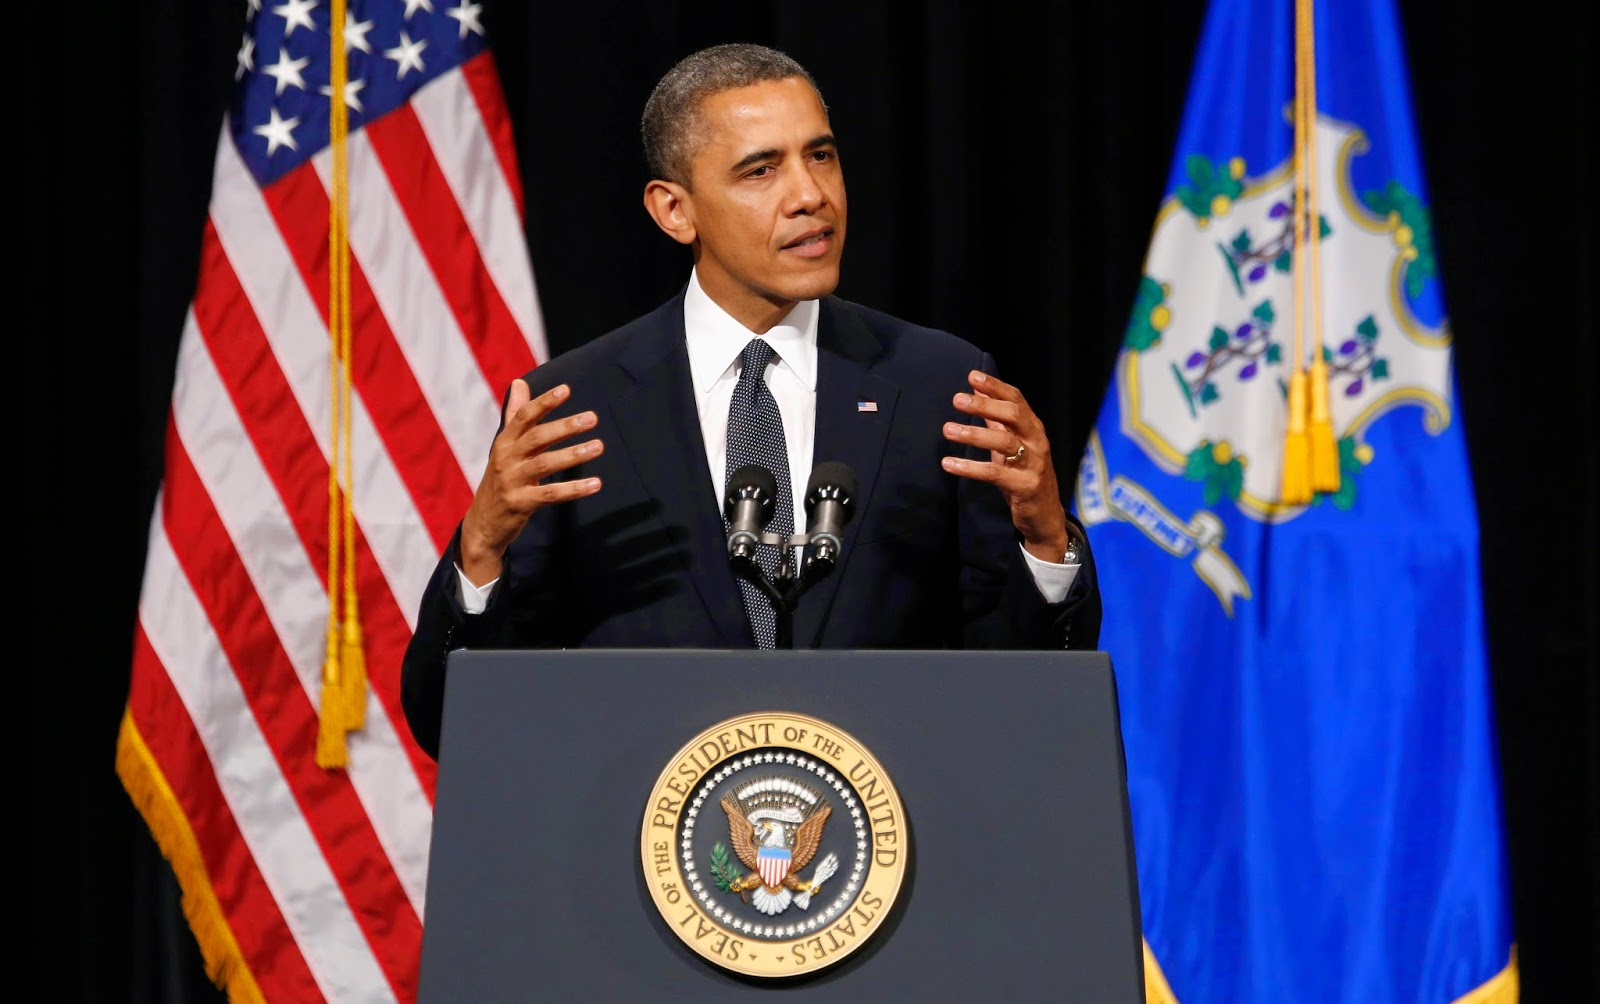 USA Republic Now In Charge - No Gold Fringe Flag During Obama Speech  012BThe2BUSA2Bgold-fringed2Bflag-1